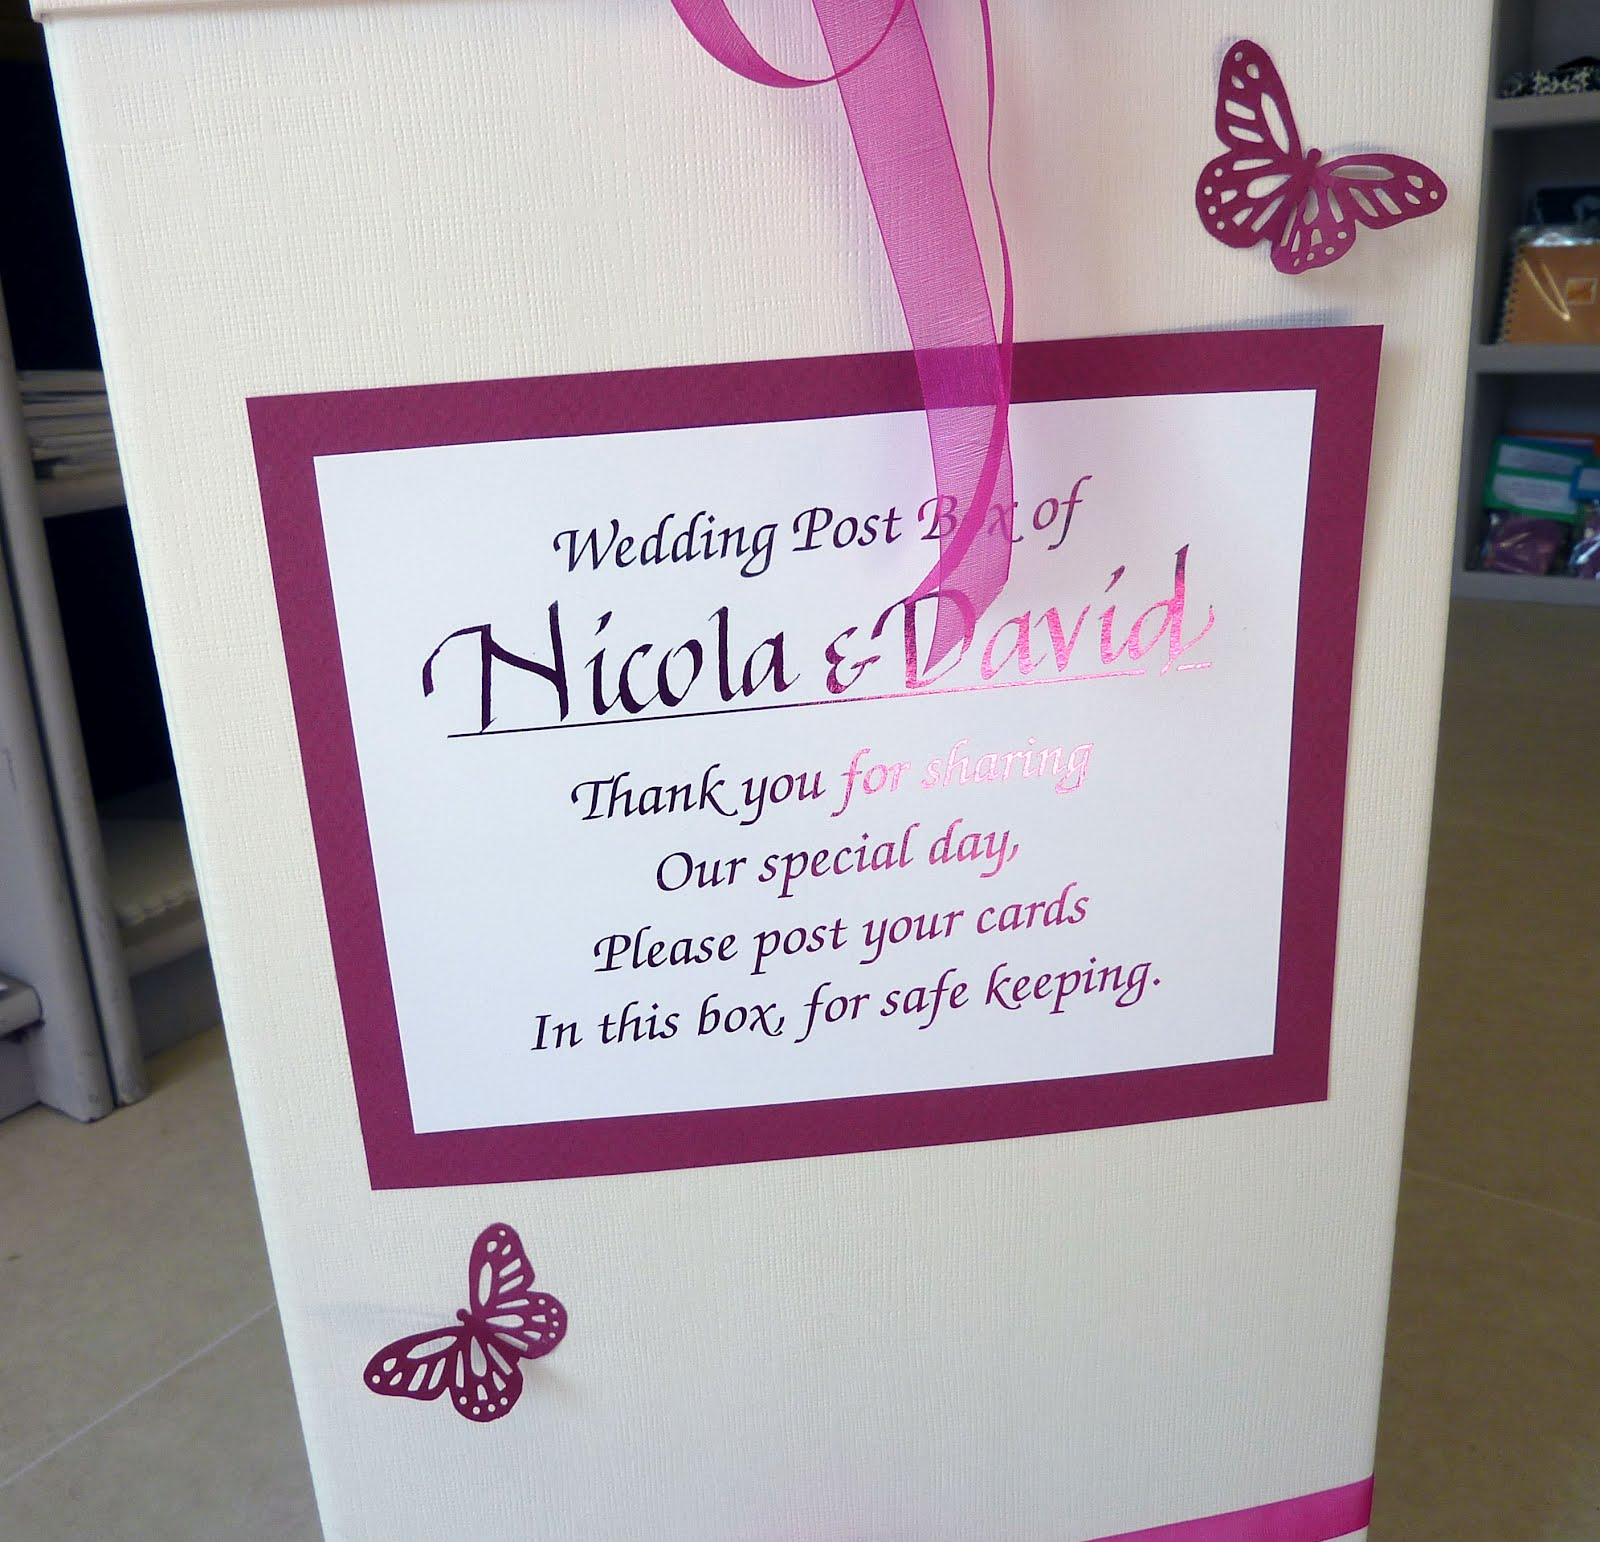 Inspired by Script FREE PRIZE DRAW Wedding Post Boxes